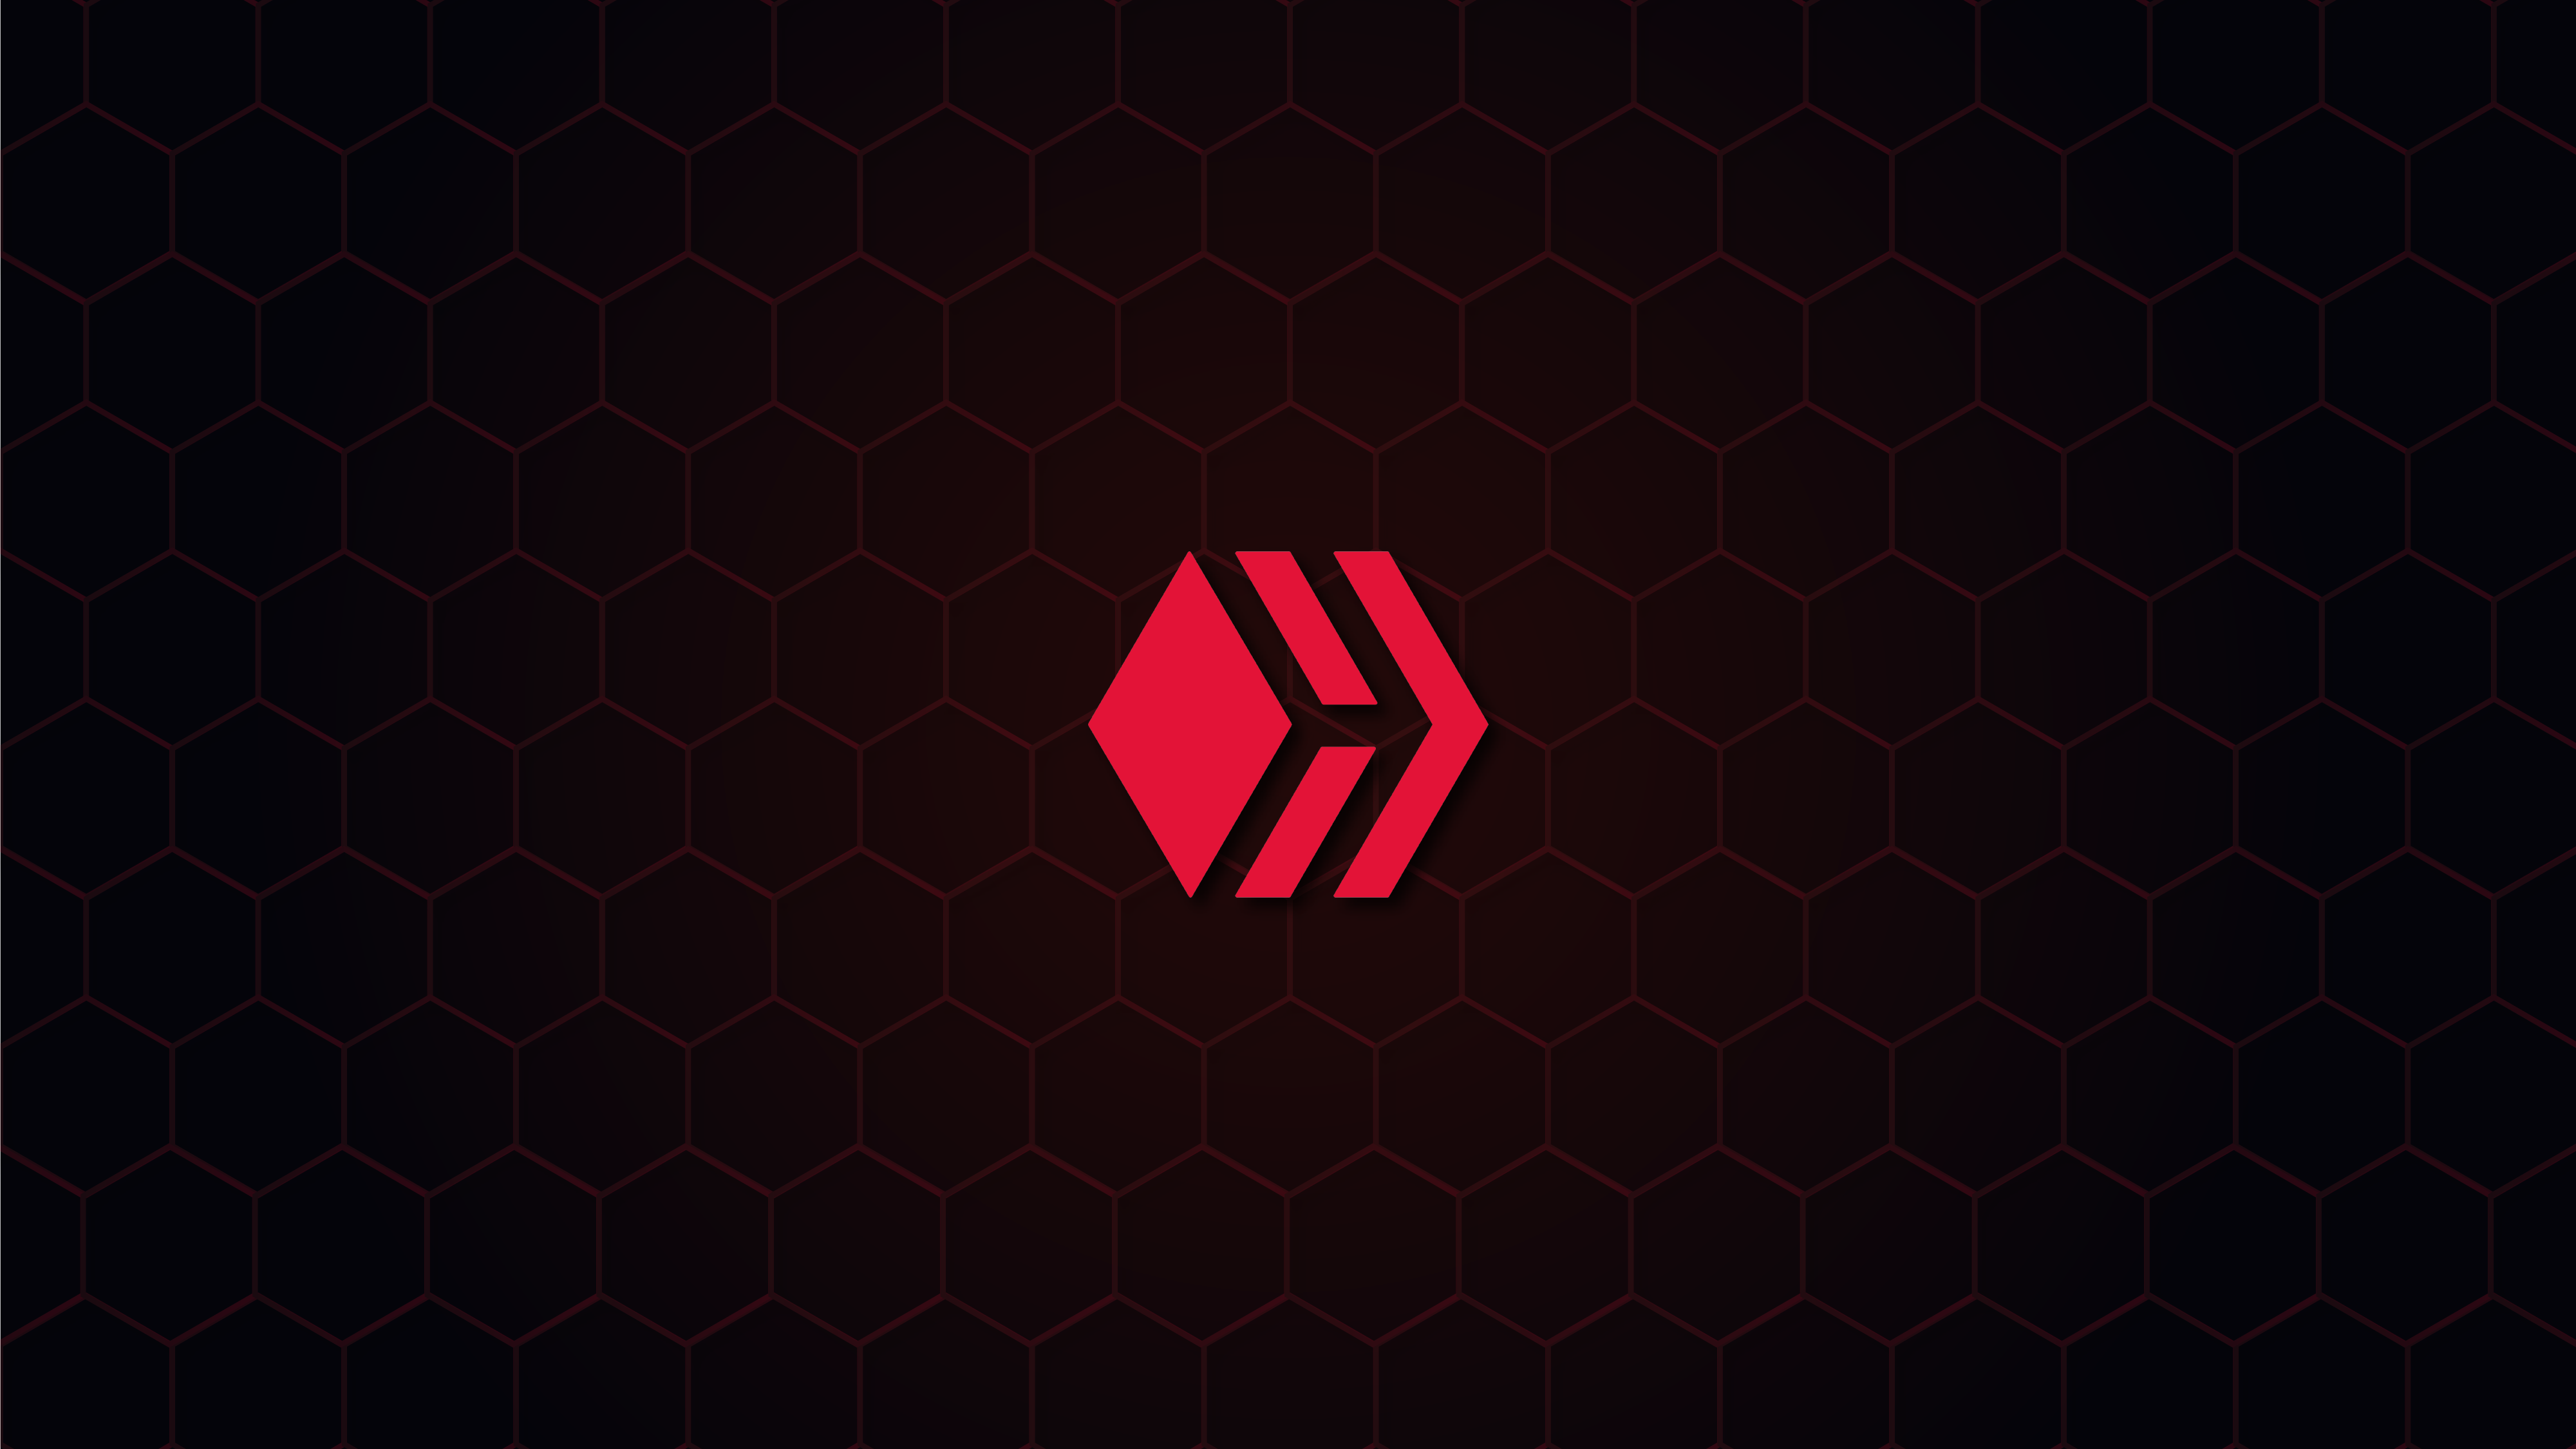 wallpapers-04.png